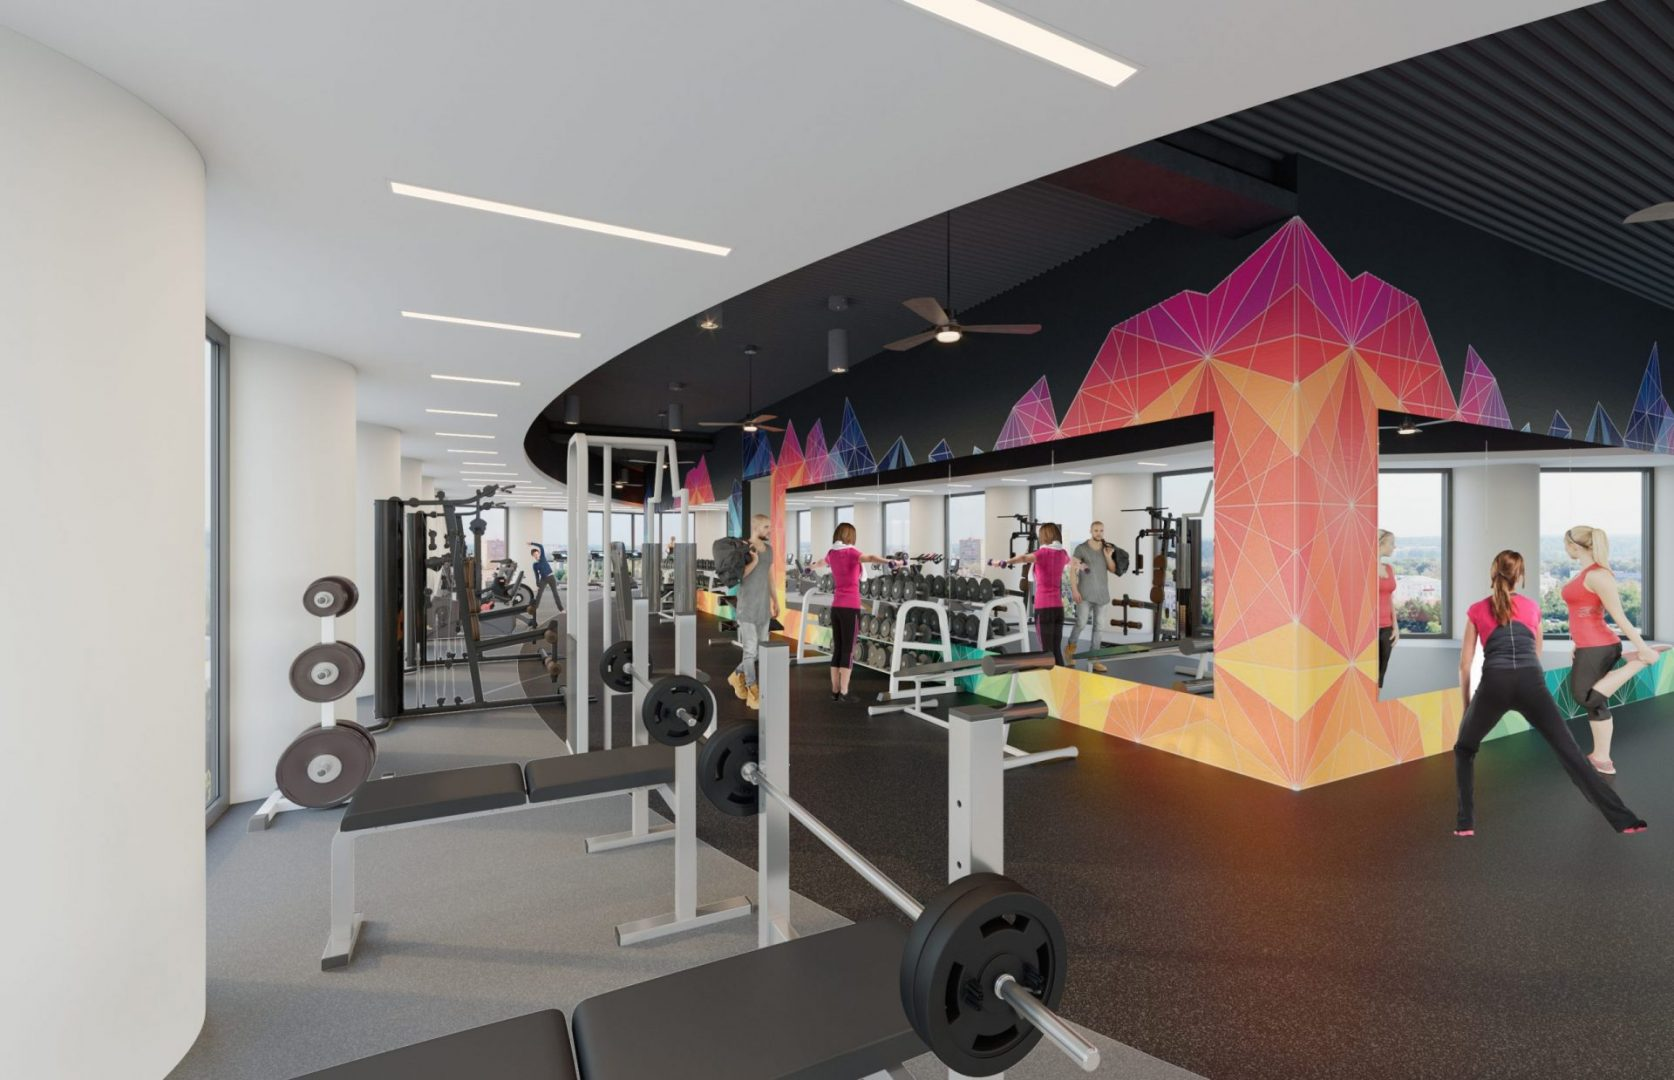 Houston Architecture Building Repositioning 1415 LOUISIANA FITNESS CENTER Houston Corporate Interior Design Fitness Floor Weights